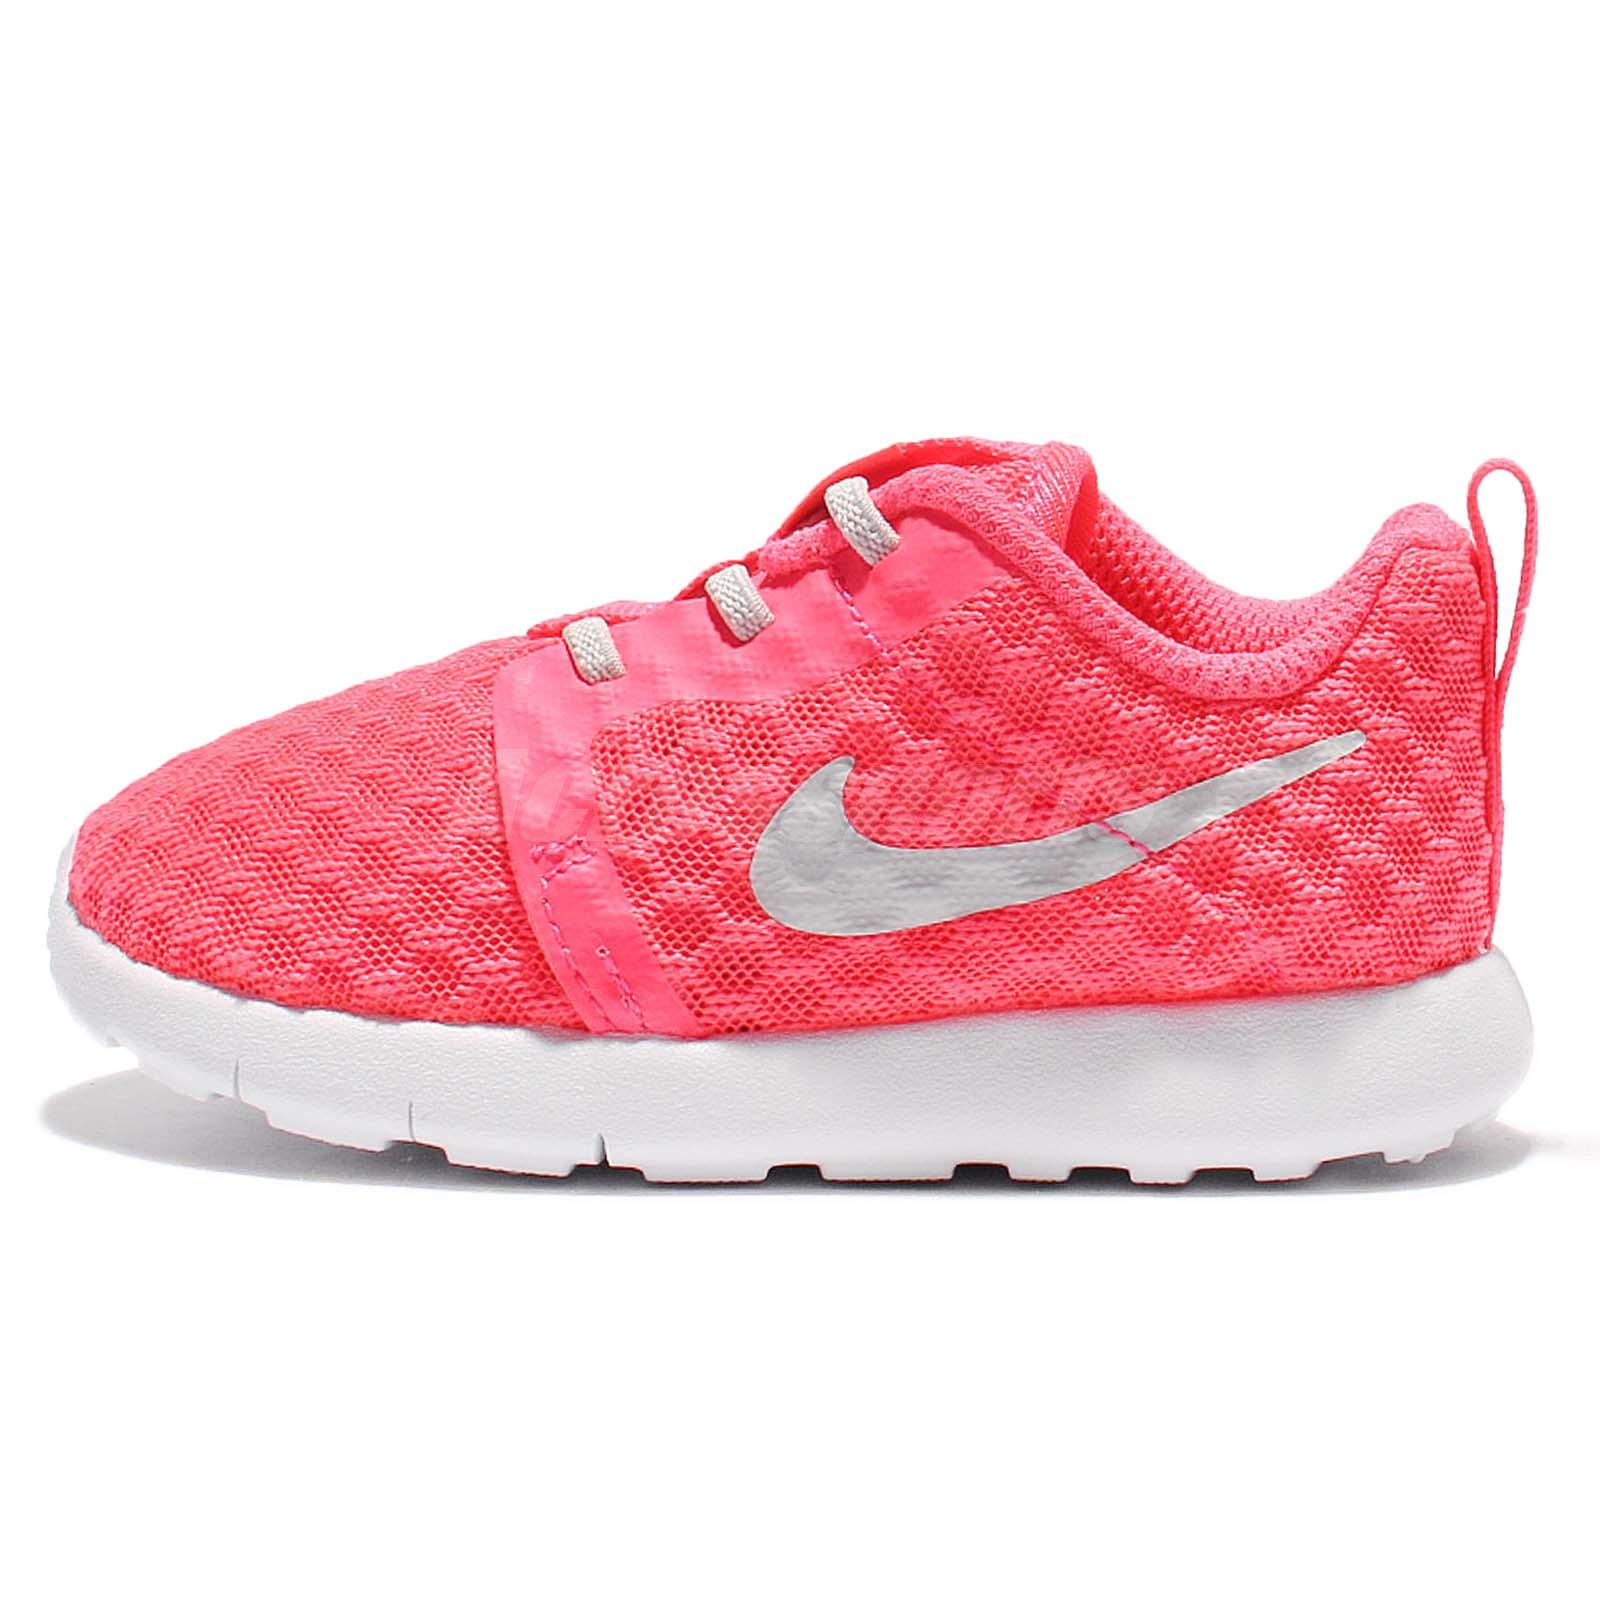 No taxes Nike Roshe Run Flight Weight Running Shoes White